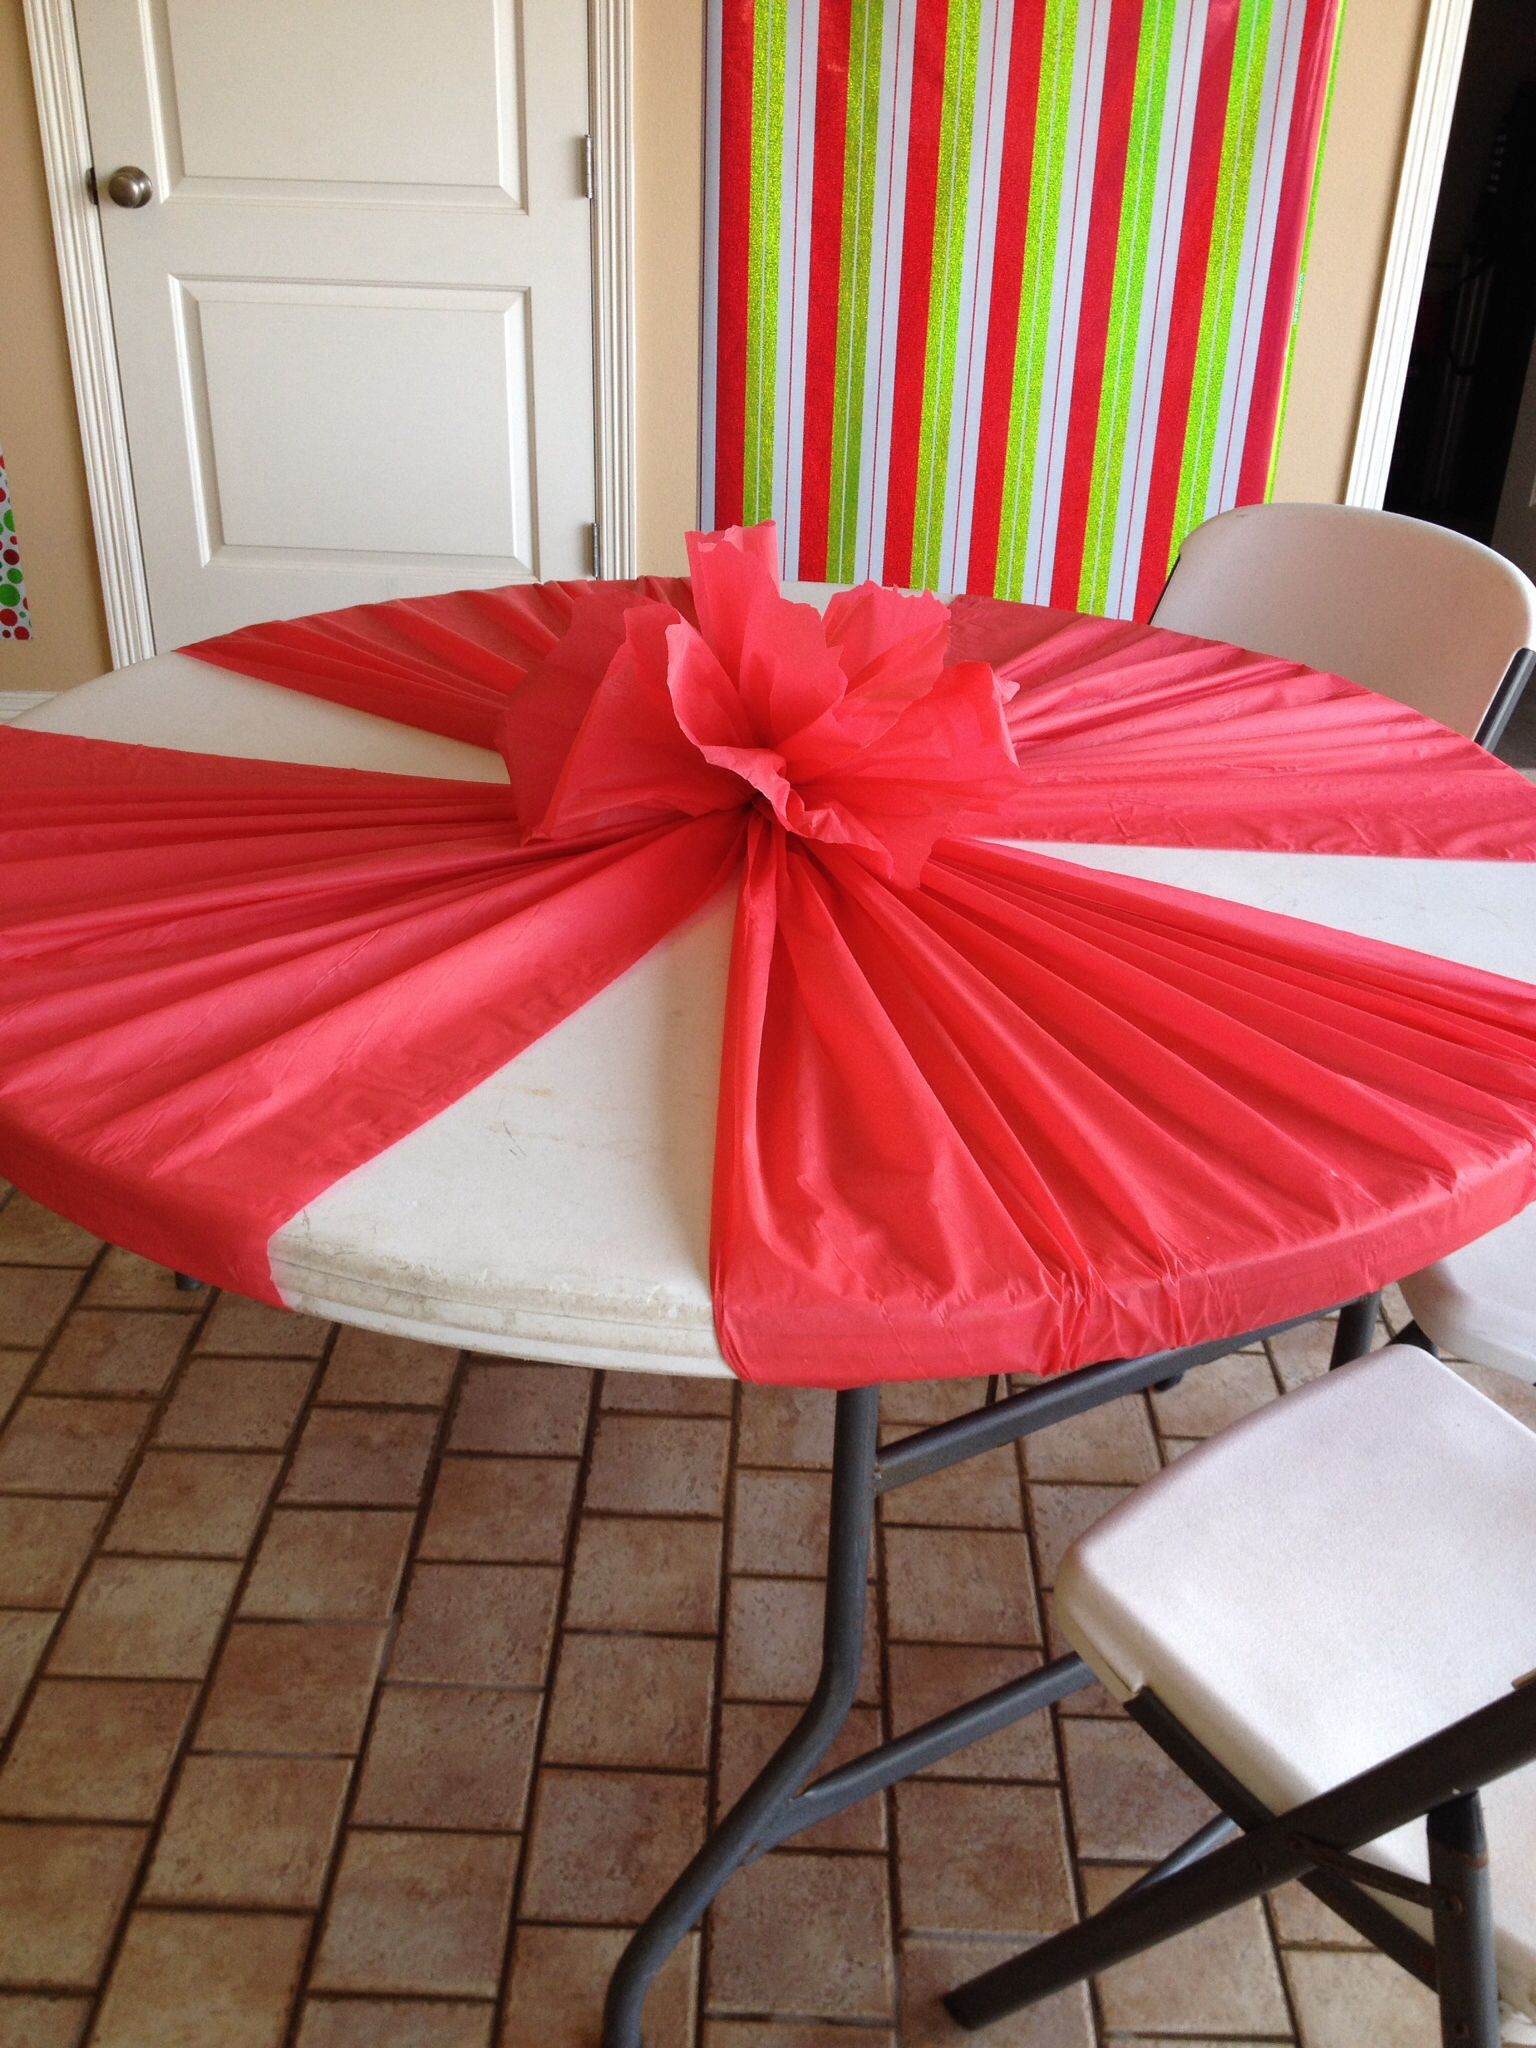 Uncategorized Table Cloth Decorations might be fun with two colors that cover the whole table plastic covering